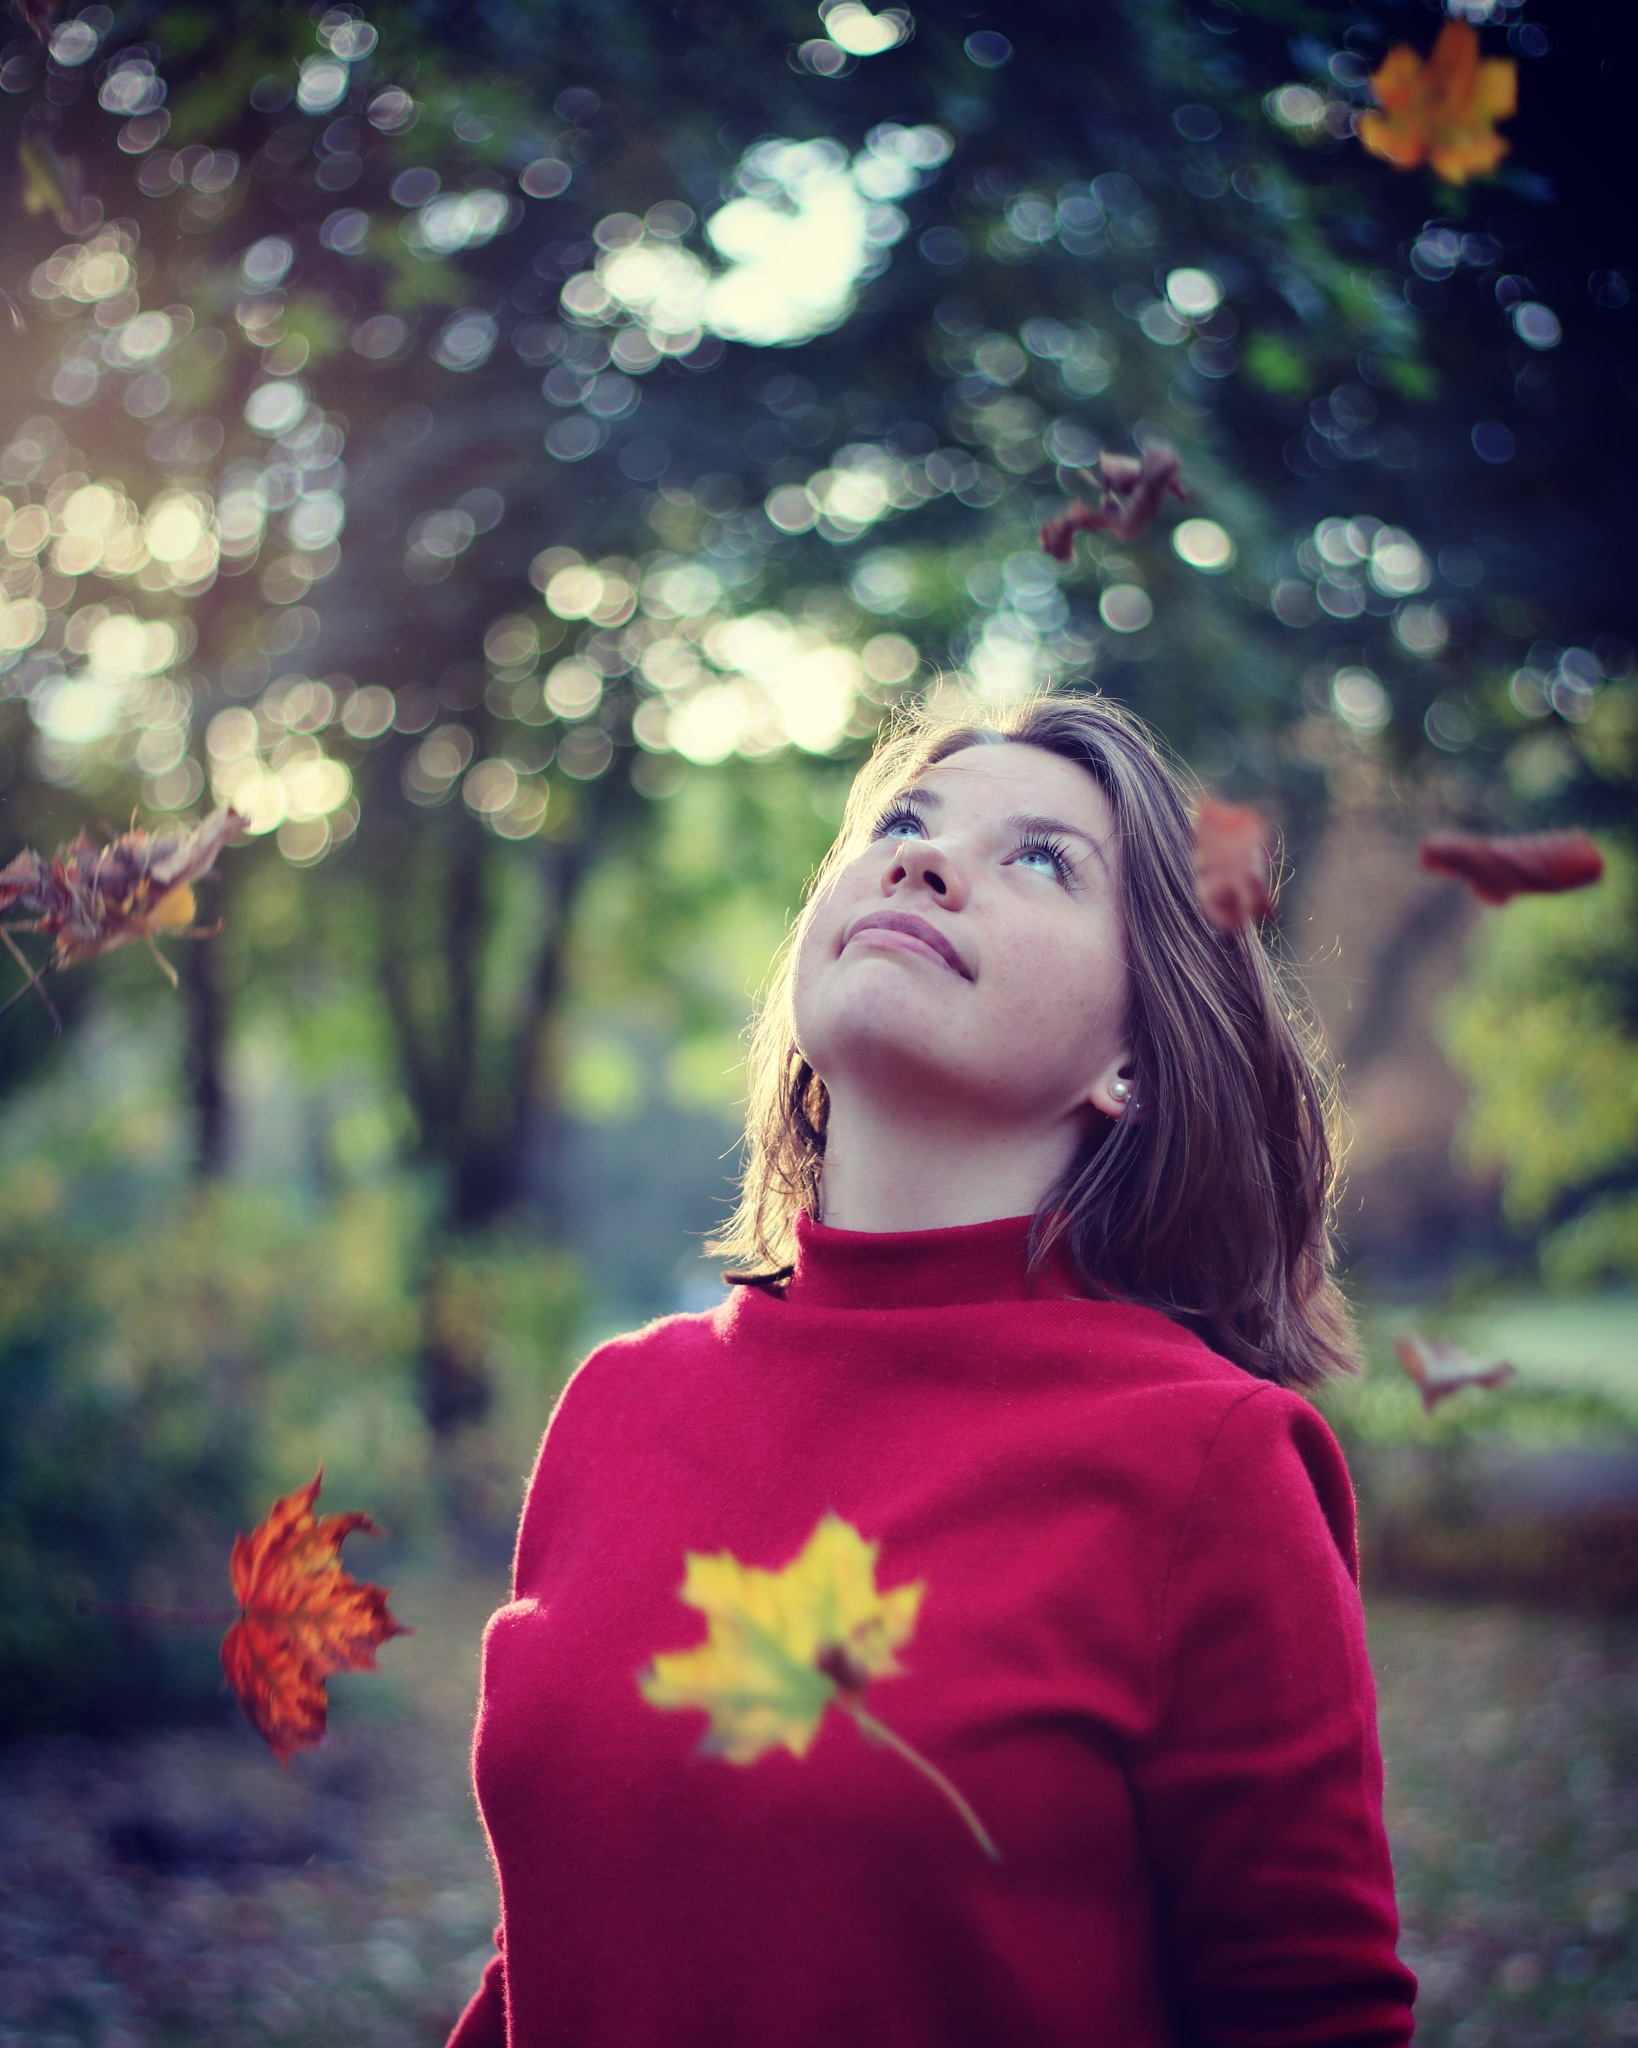 lovely moments in autumn by Conny Mi